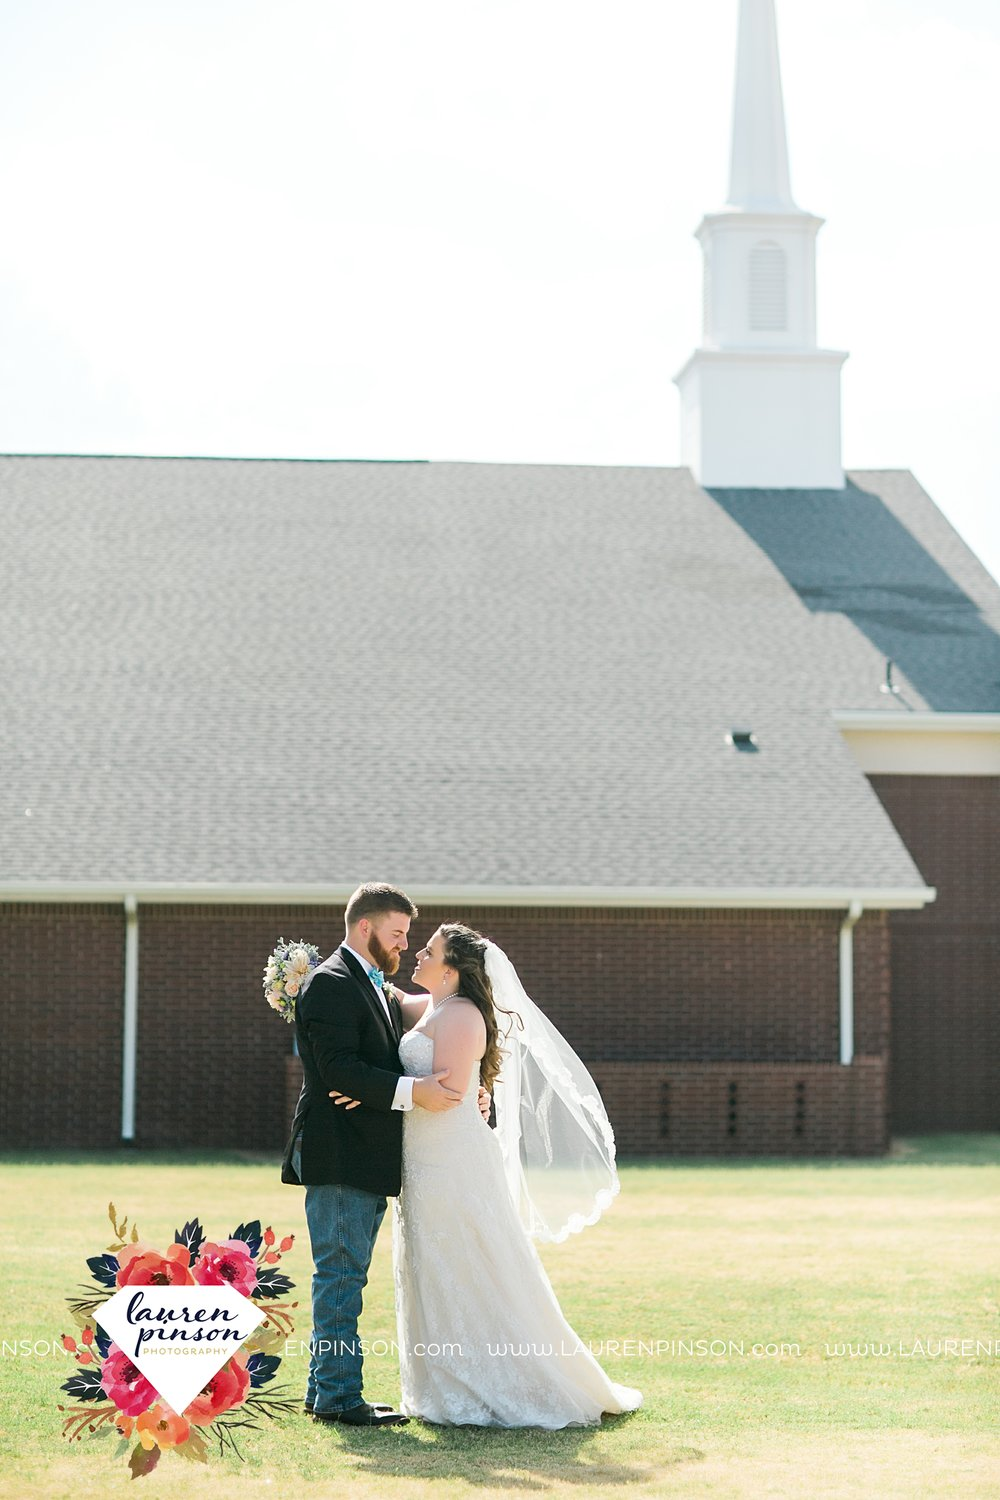 walters-oklahoma-wedding-wichita-falls-photographer_3324.jpg